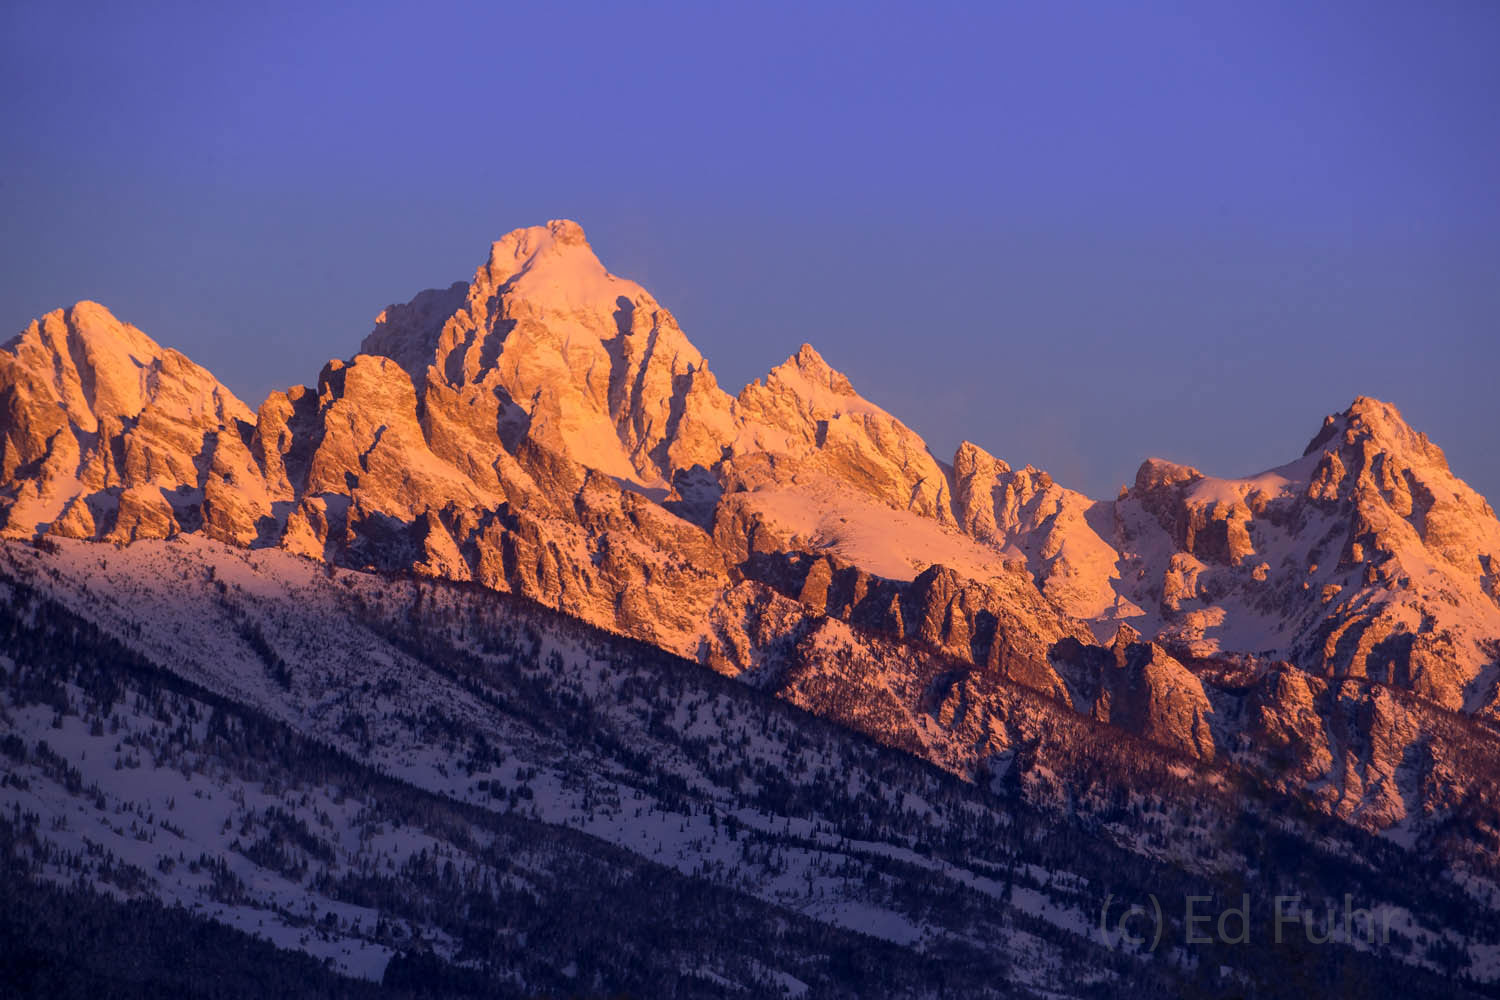 grand teton, sunrise, winter, 2016, photograph, Tetons, photo